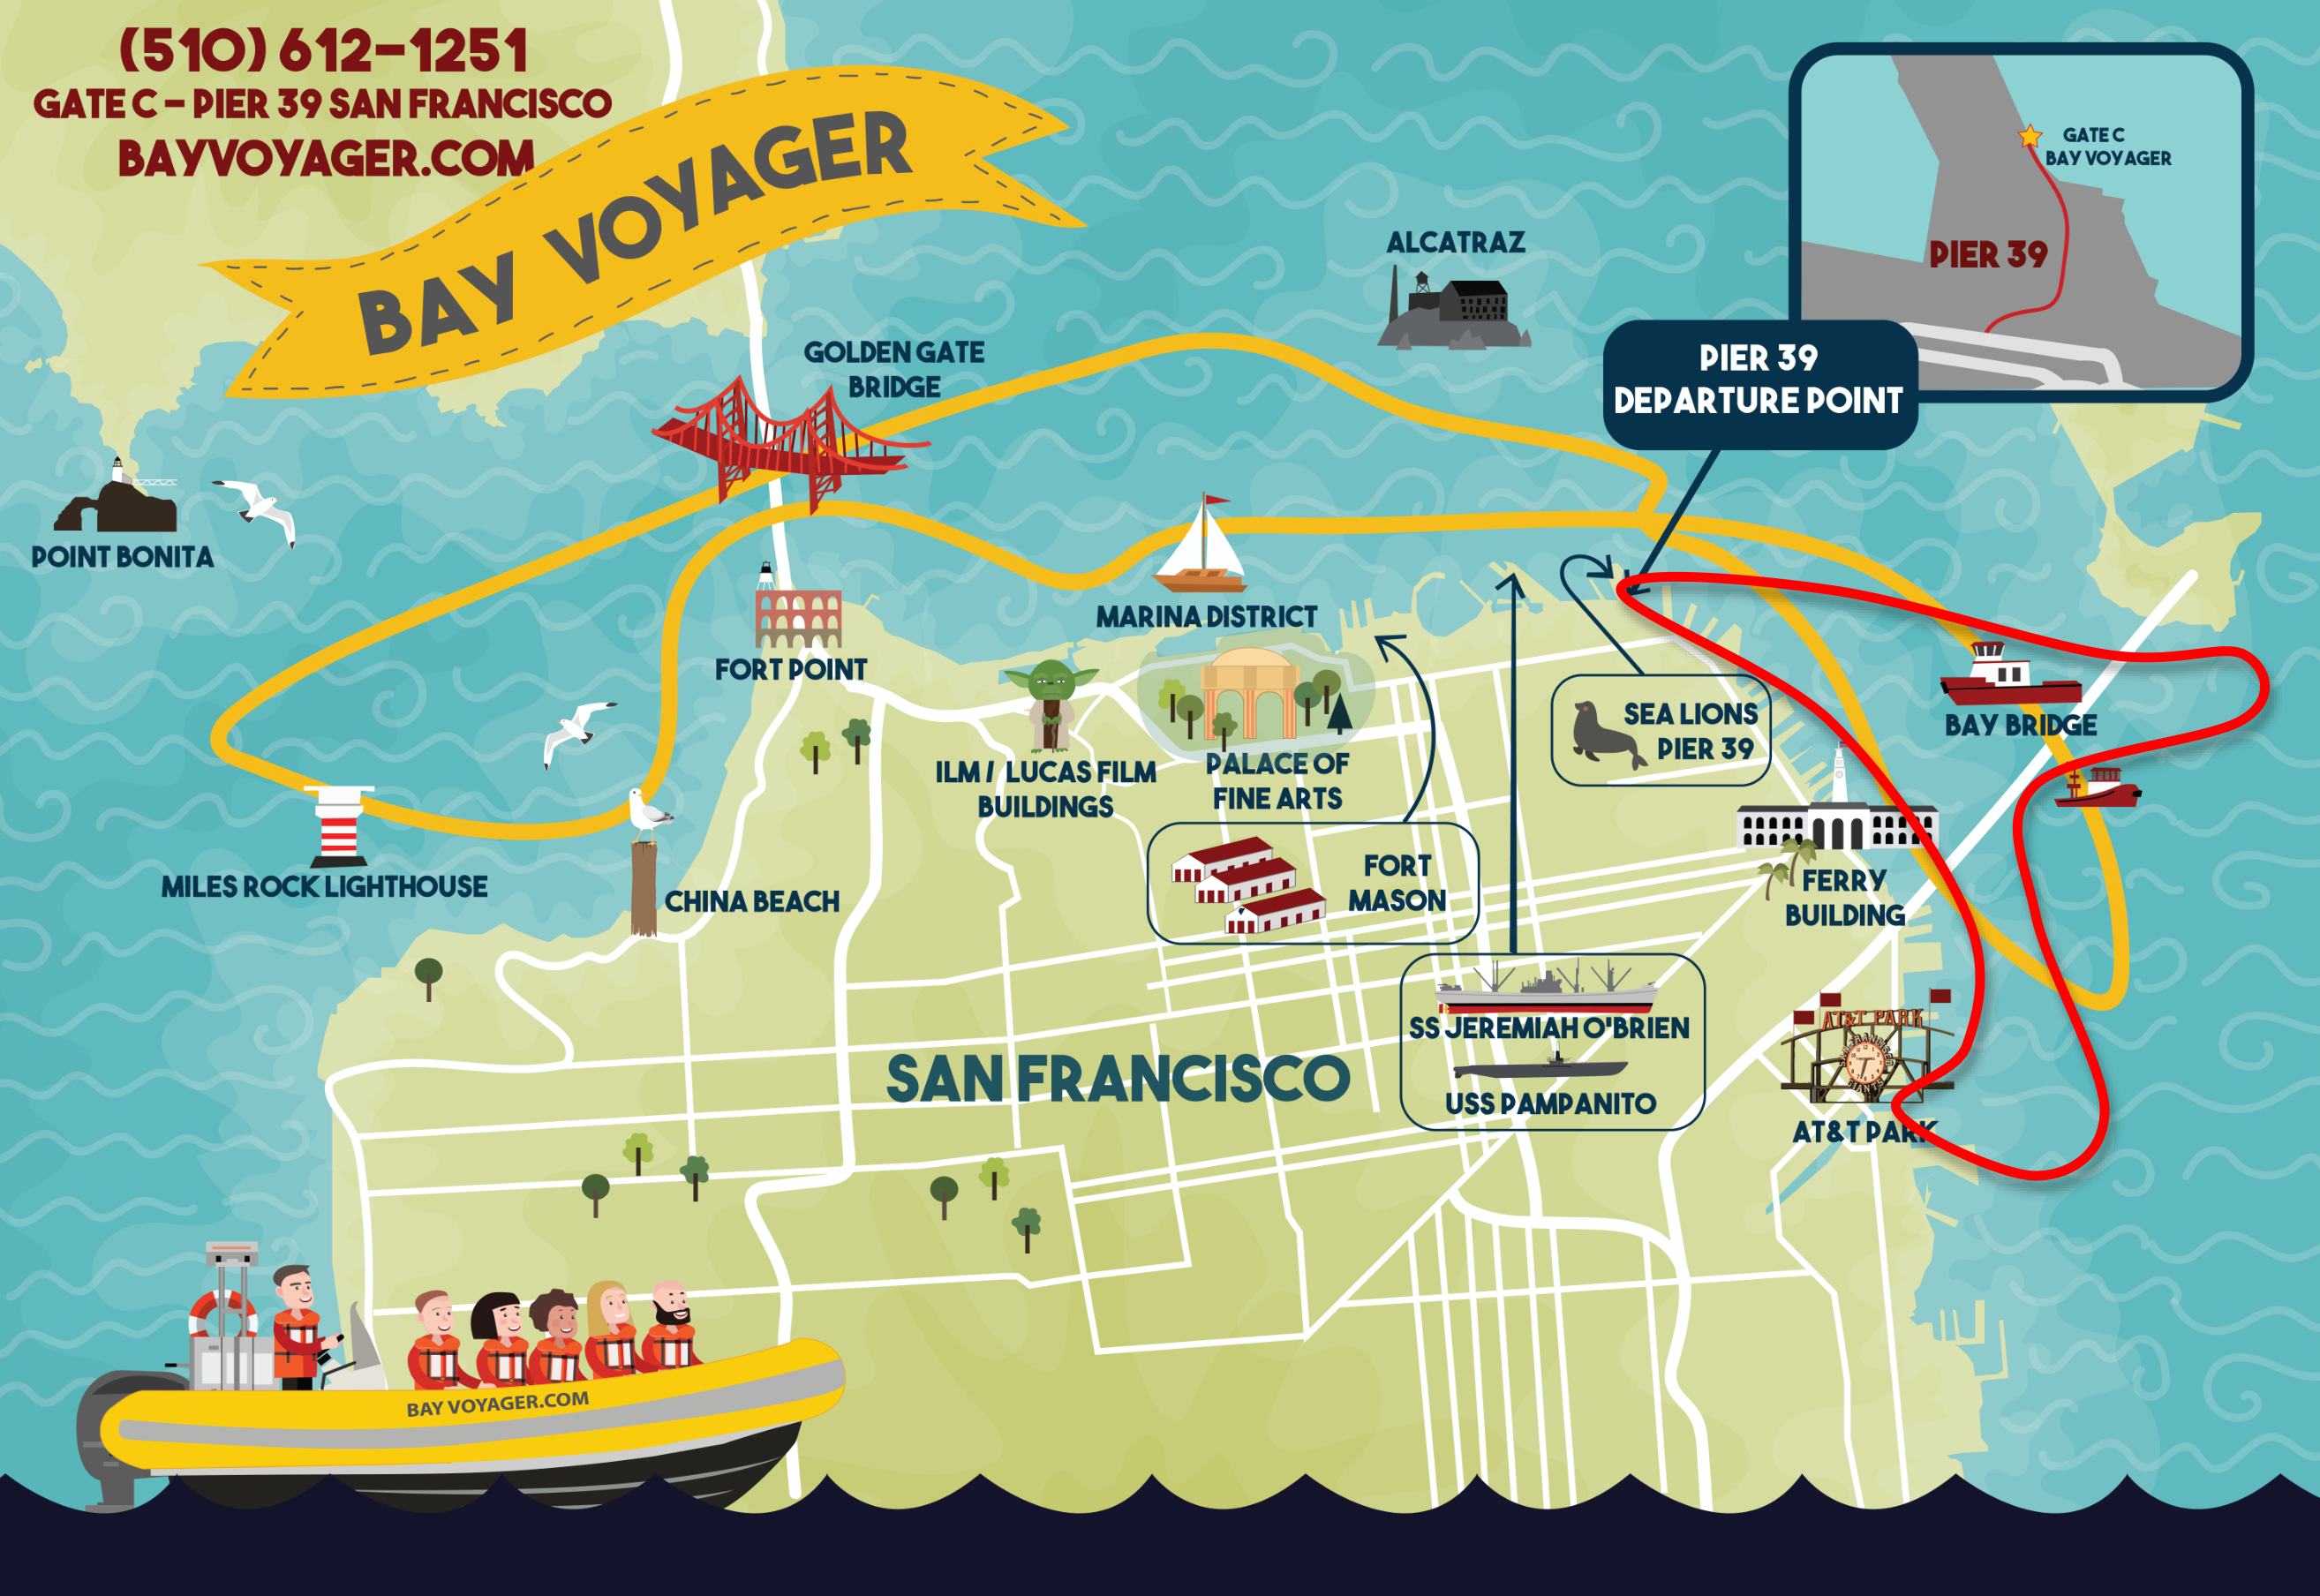 45 South Bay Voyager Map 2021 2